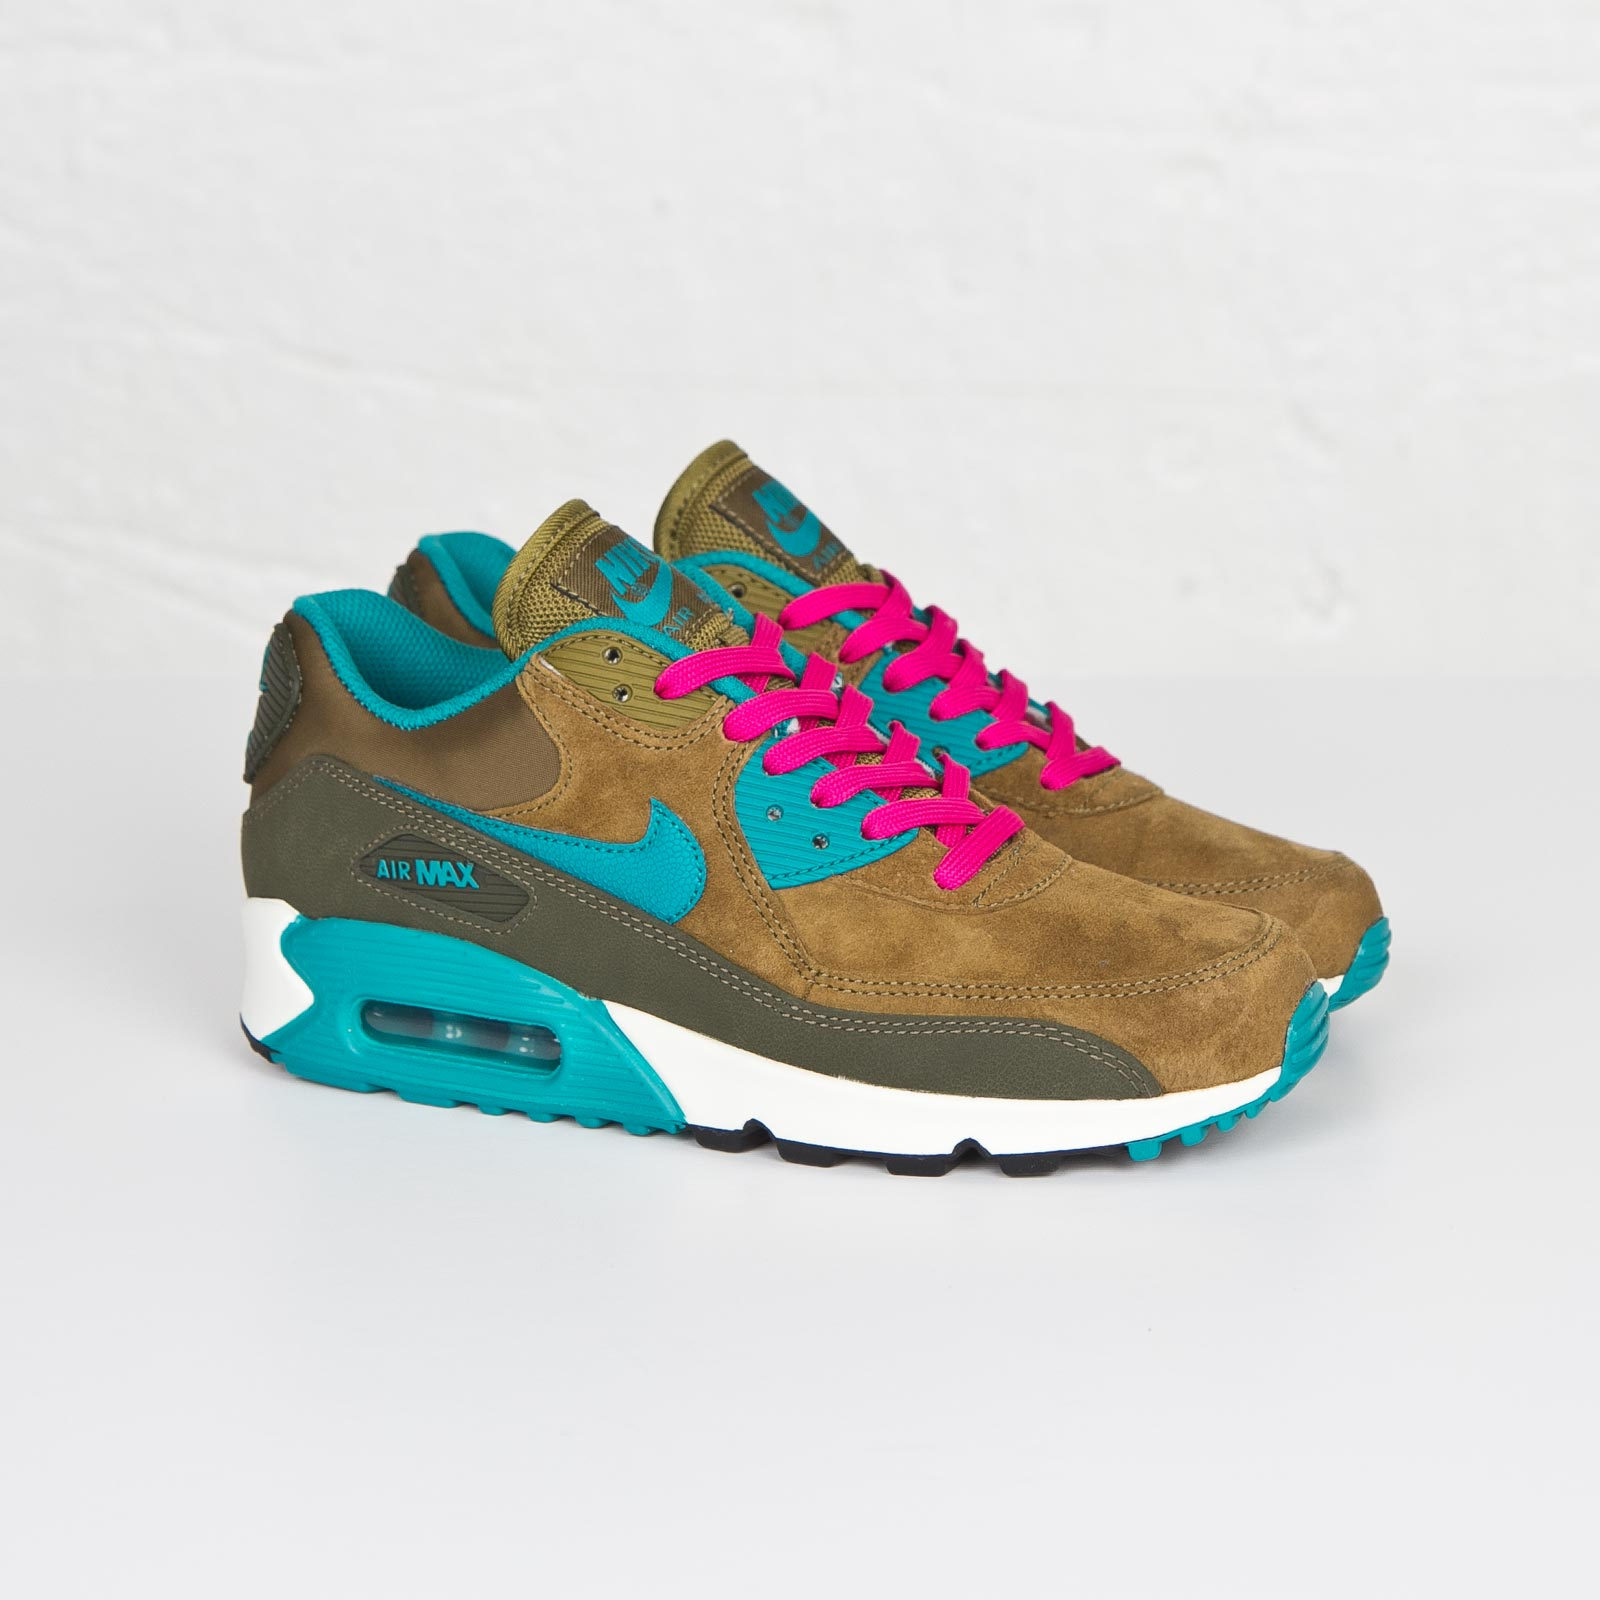 Nike Wmns Air Max 90 Leather - 768887-300 - Sneakersnstuff ... 870b821c49a